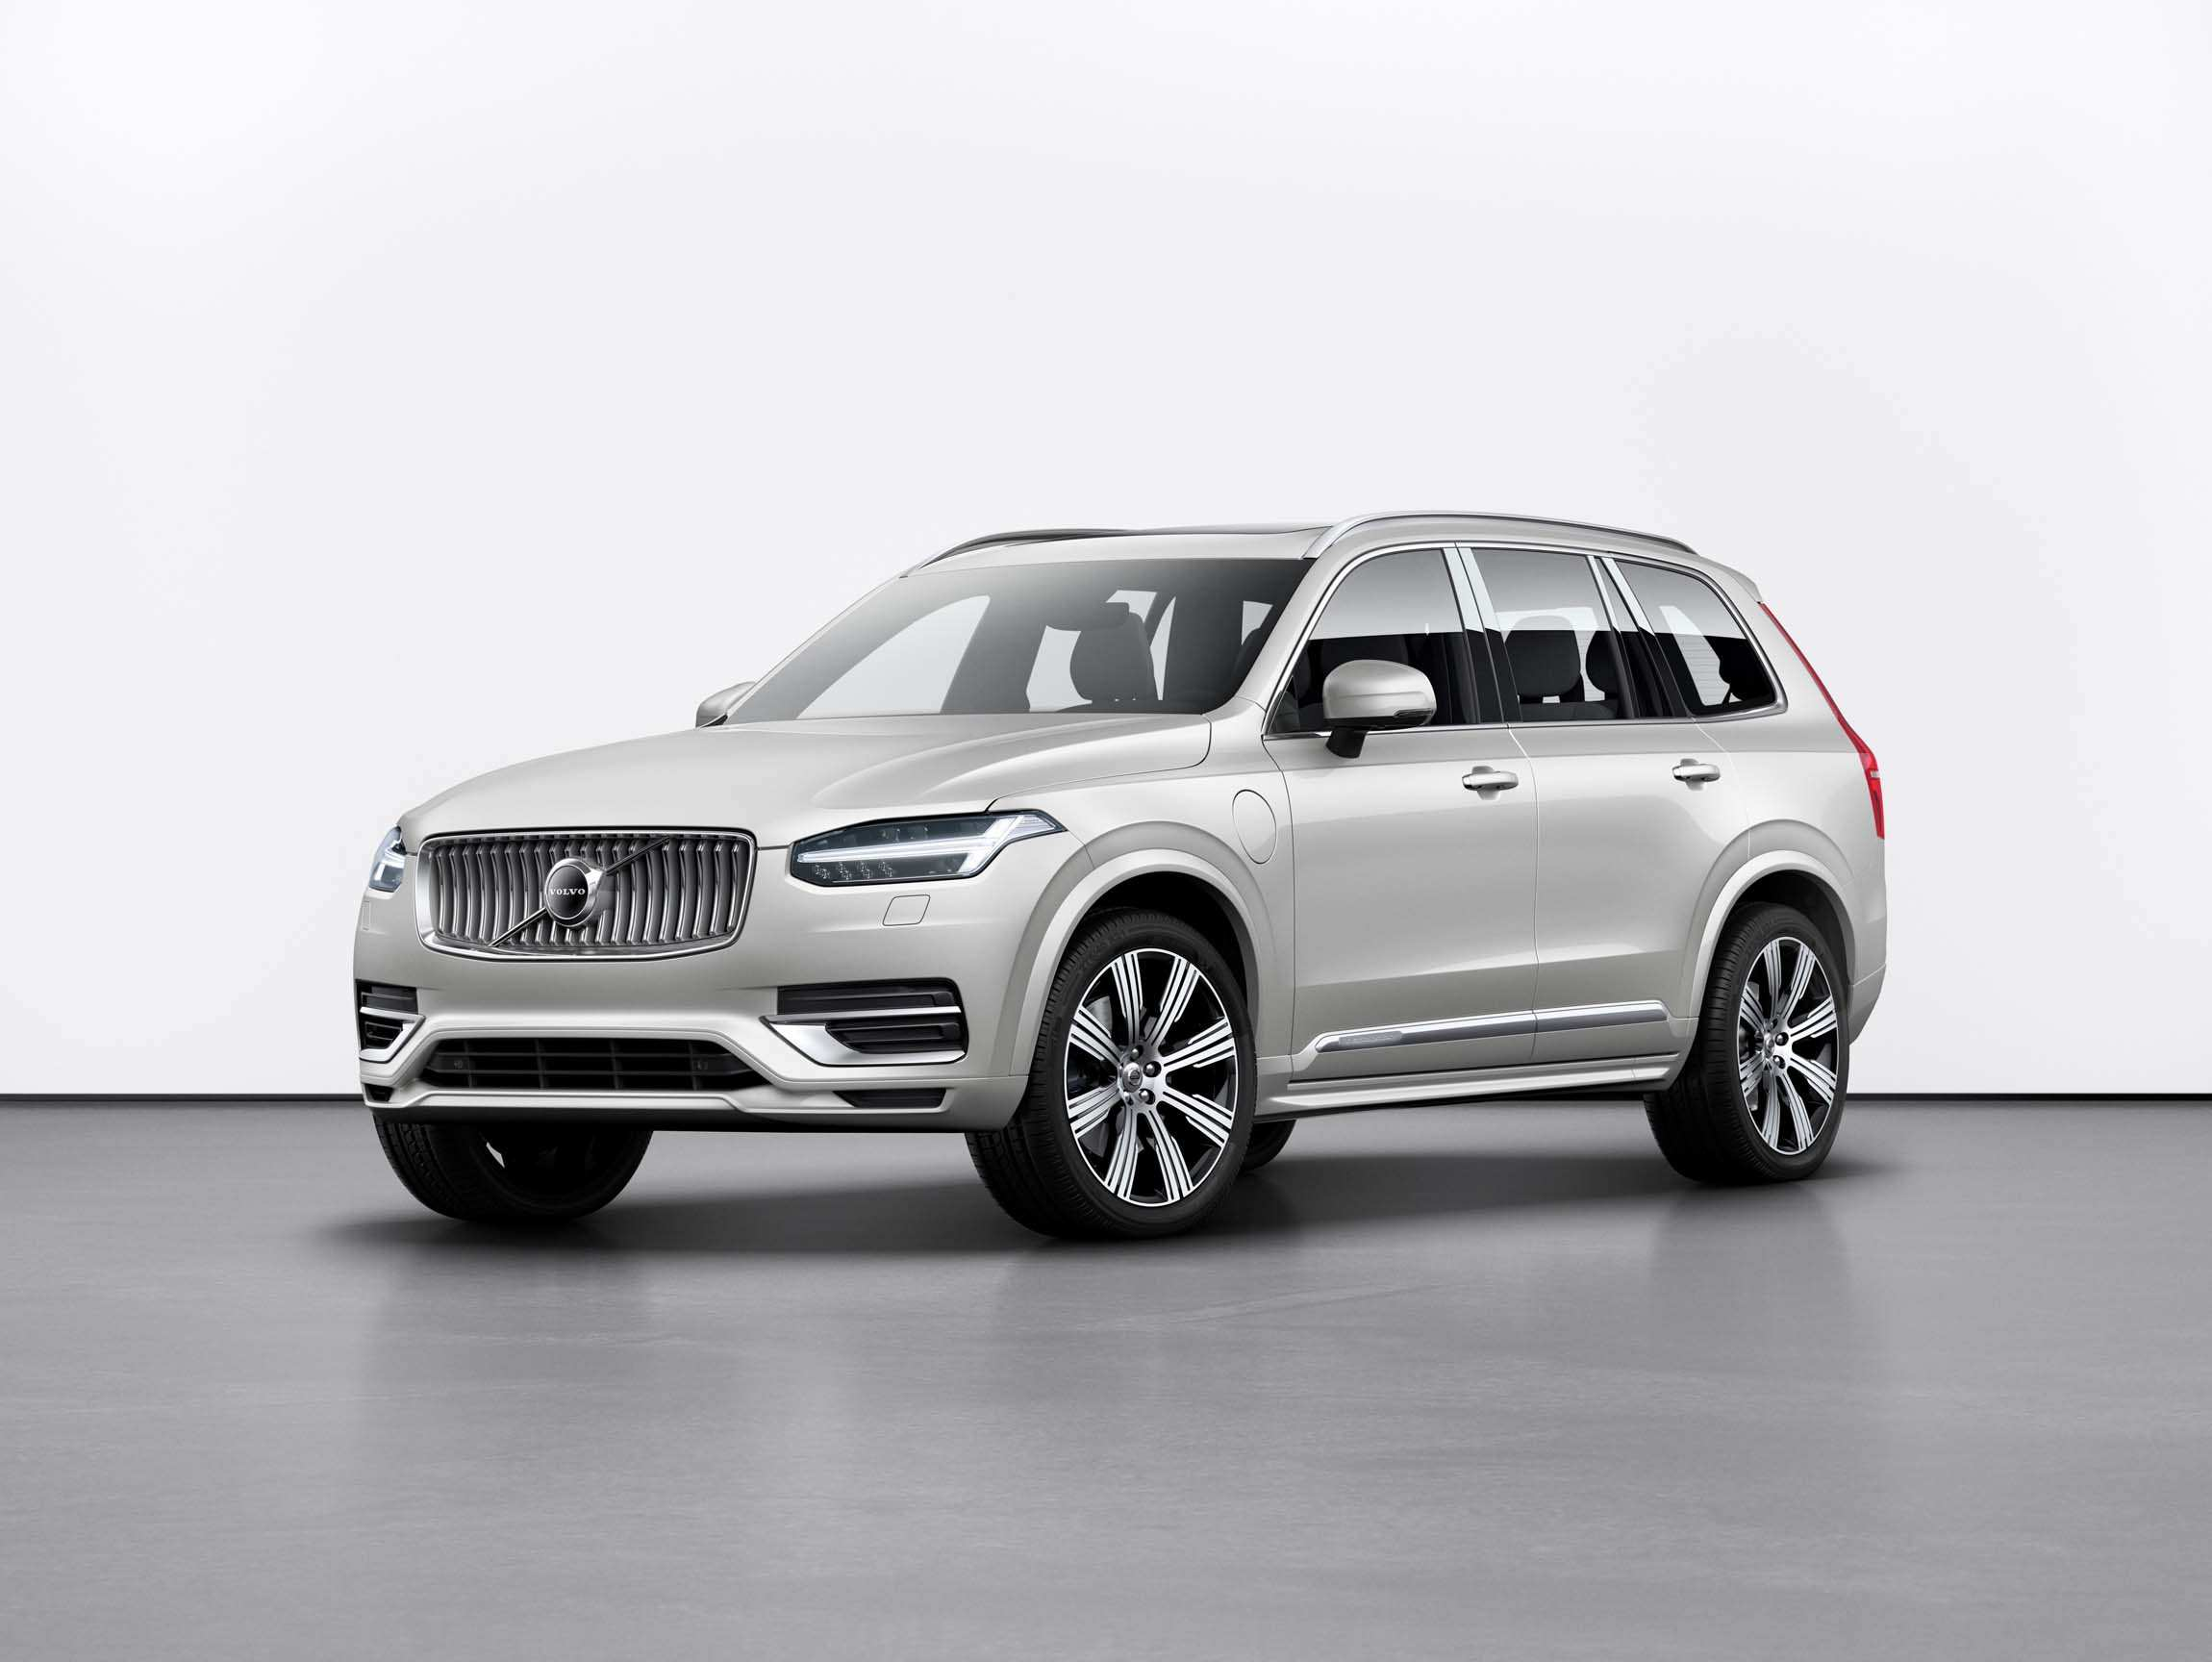 79 The Best Volvo Hybrid Cars 2020 Style